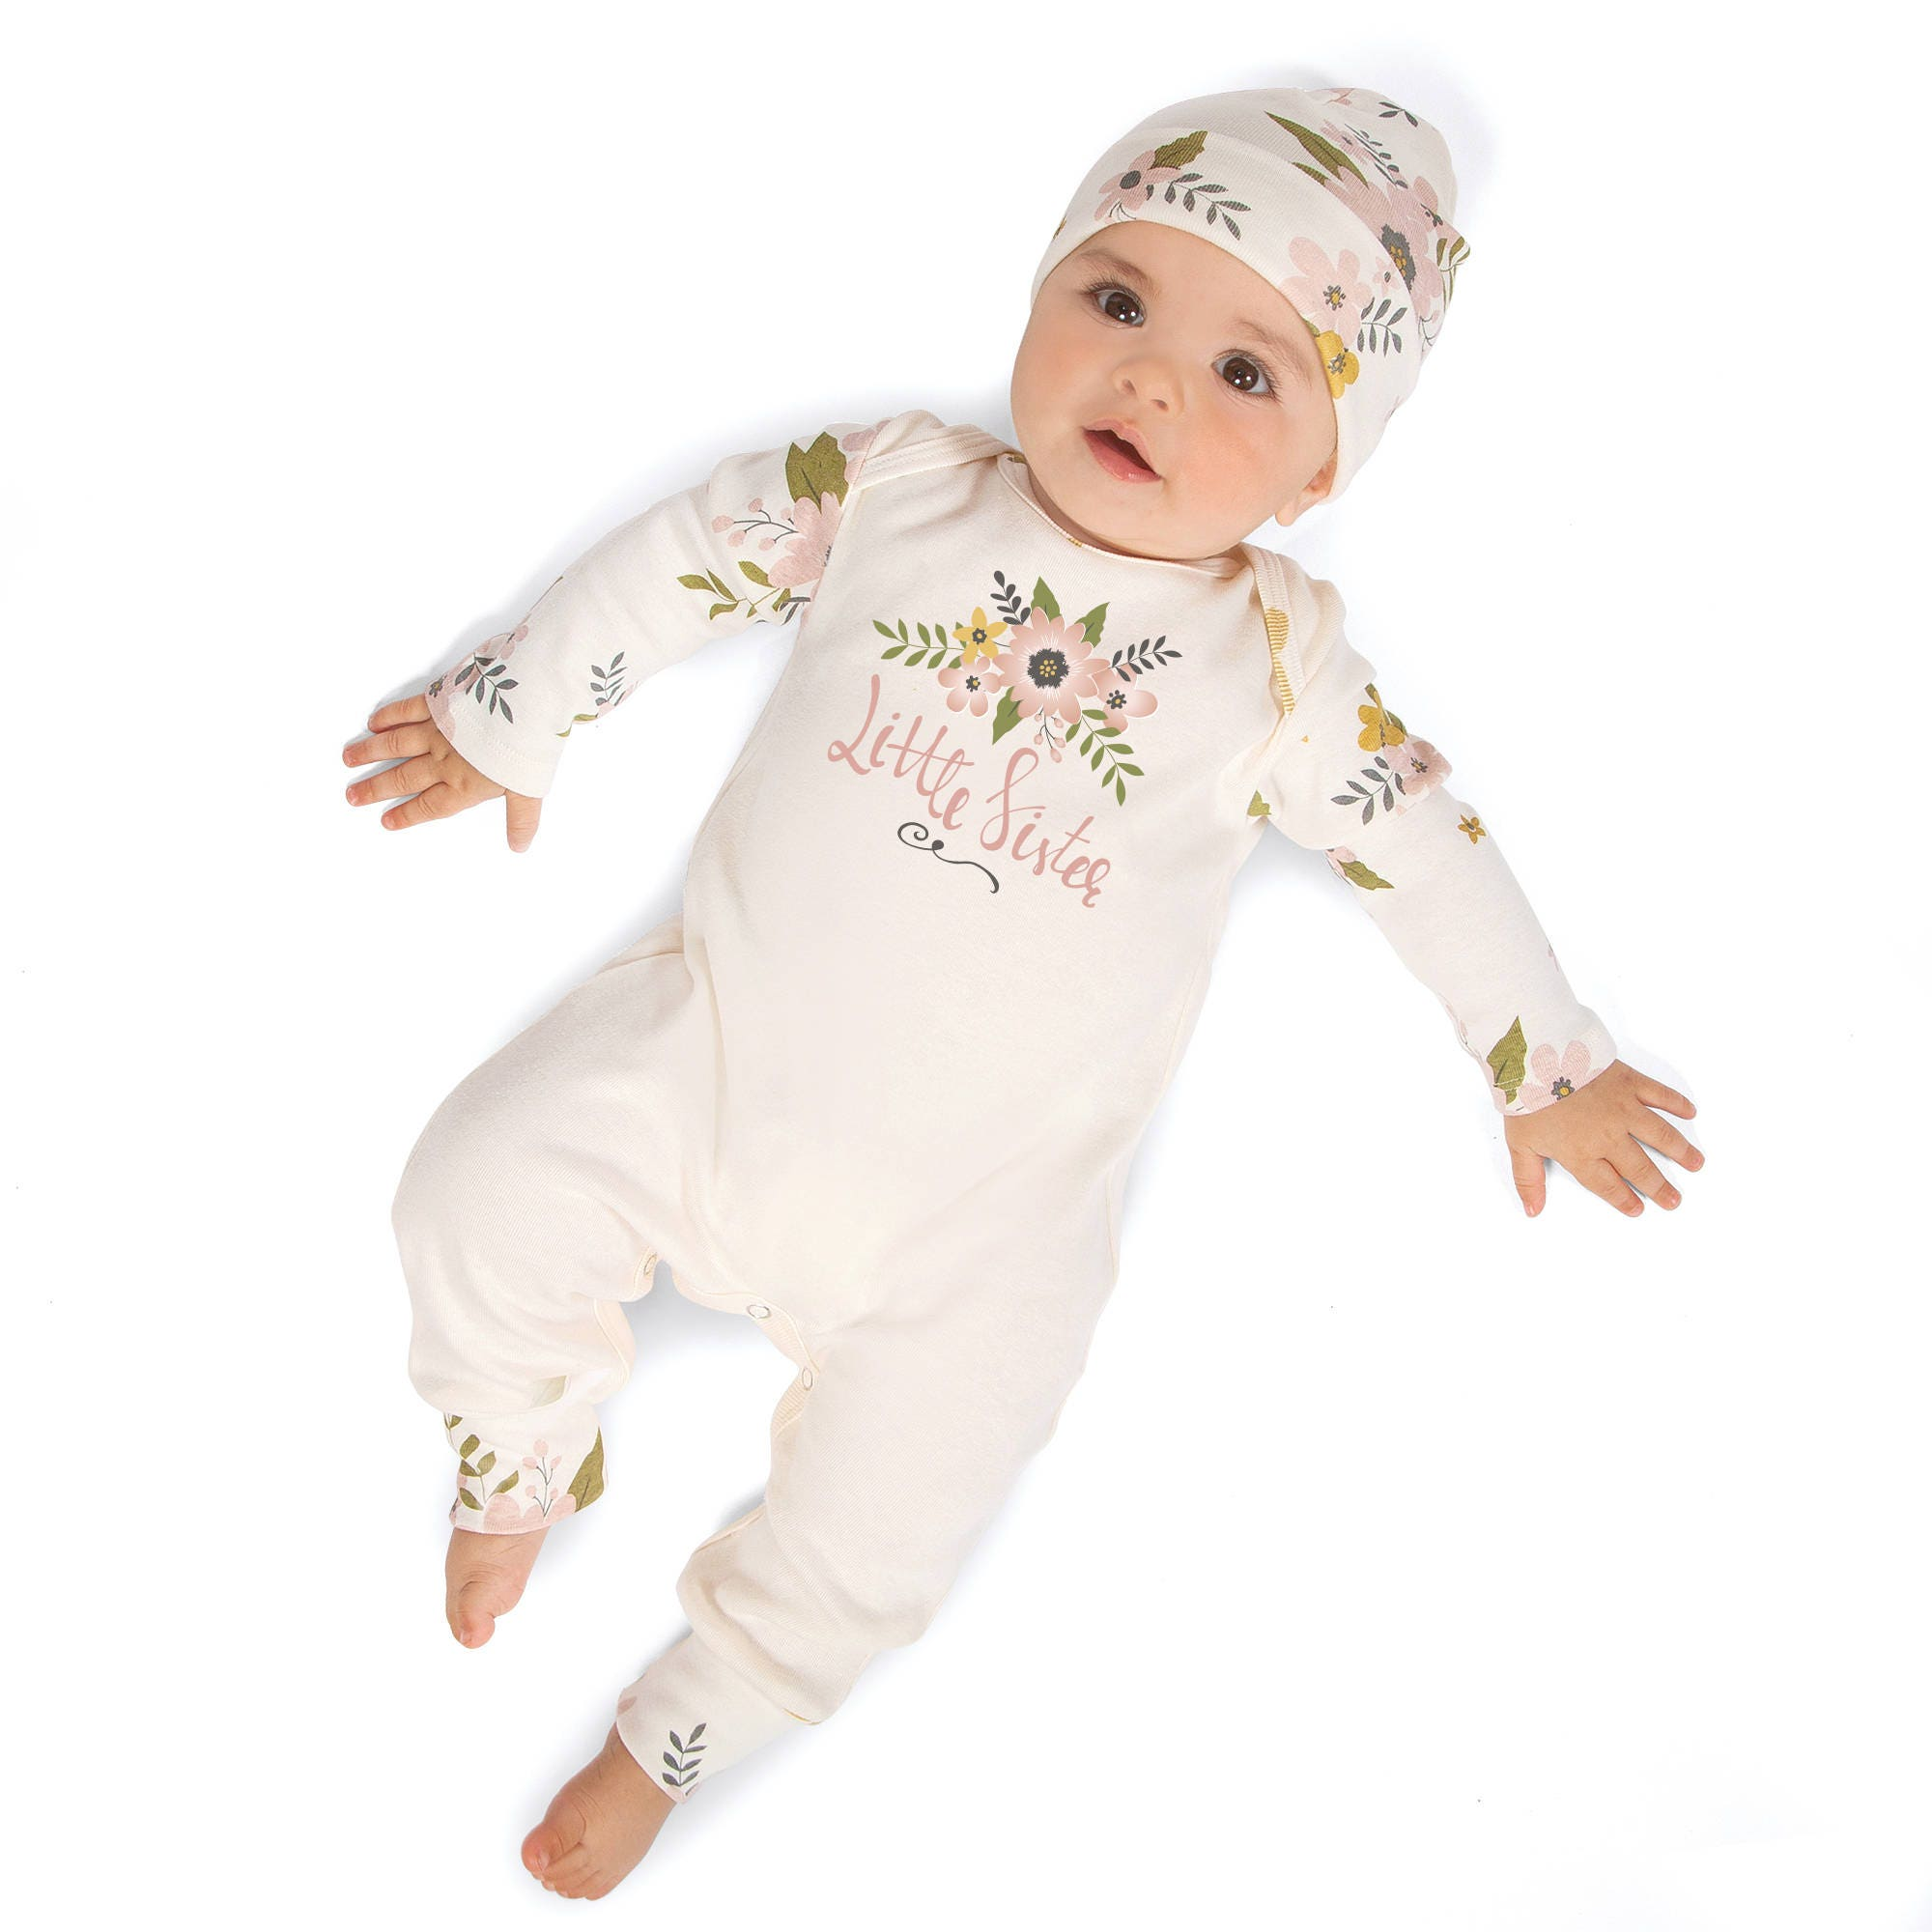 Little Sister Newborn Girl ing Home Outfit Infant Girl Outfit